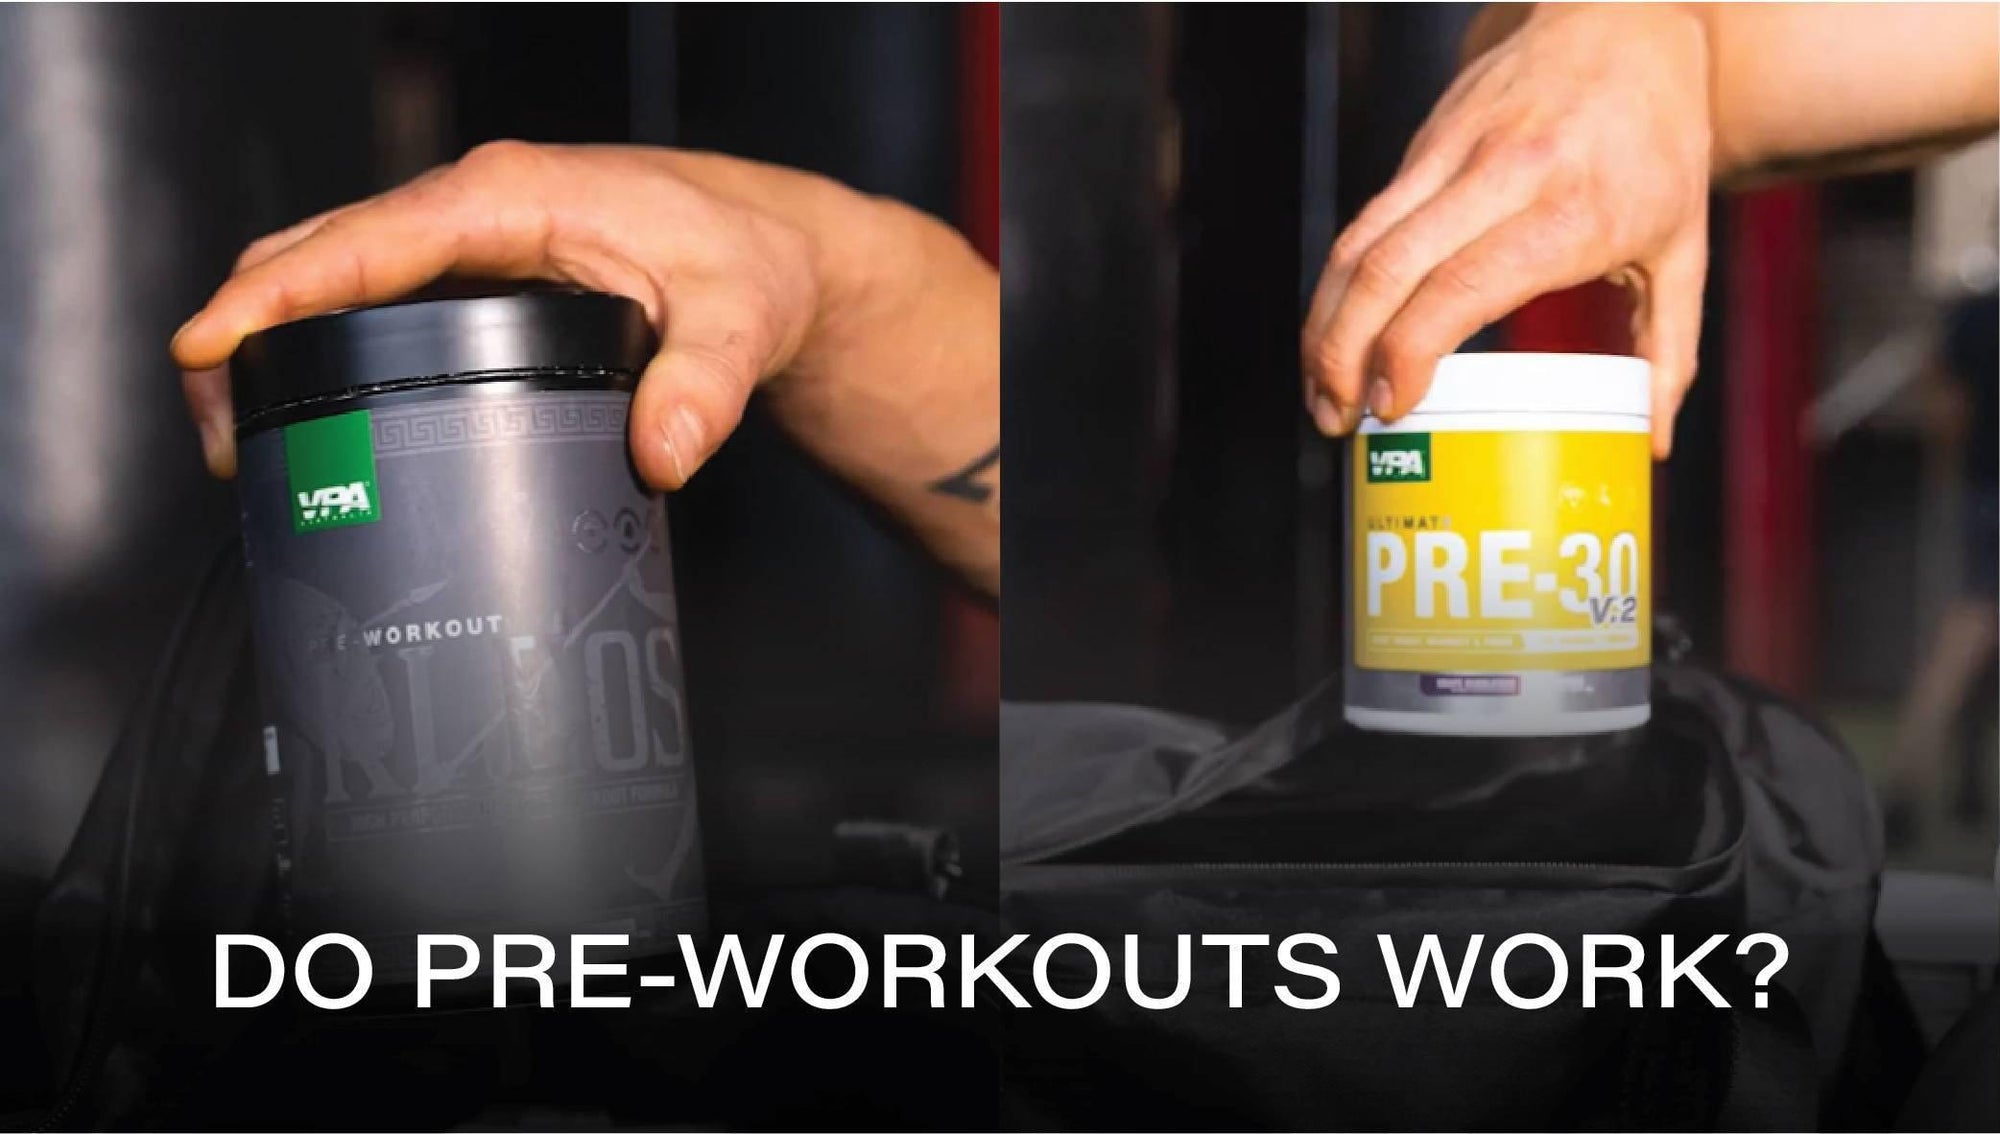 Pre-workouts don't work – debunking the myth.-VPA Australia